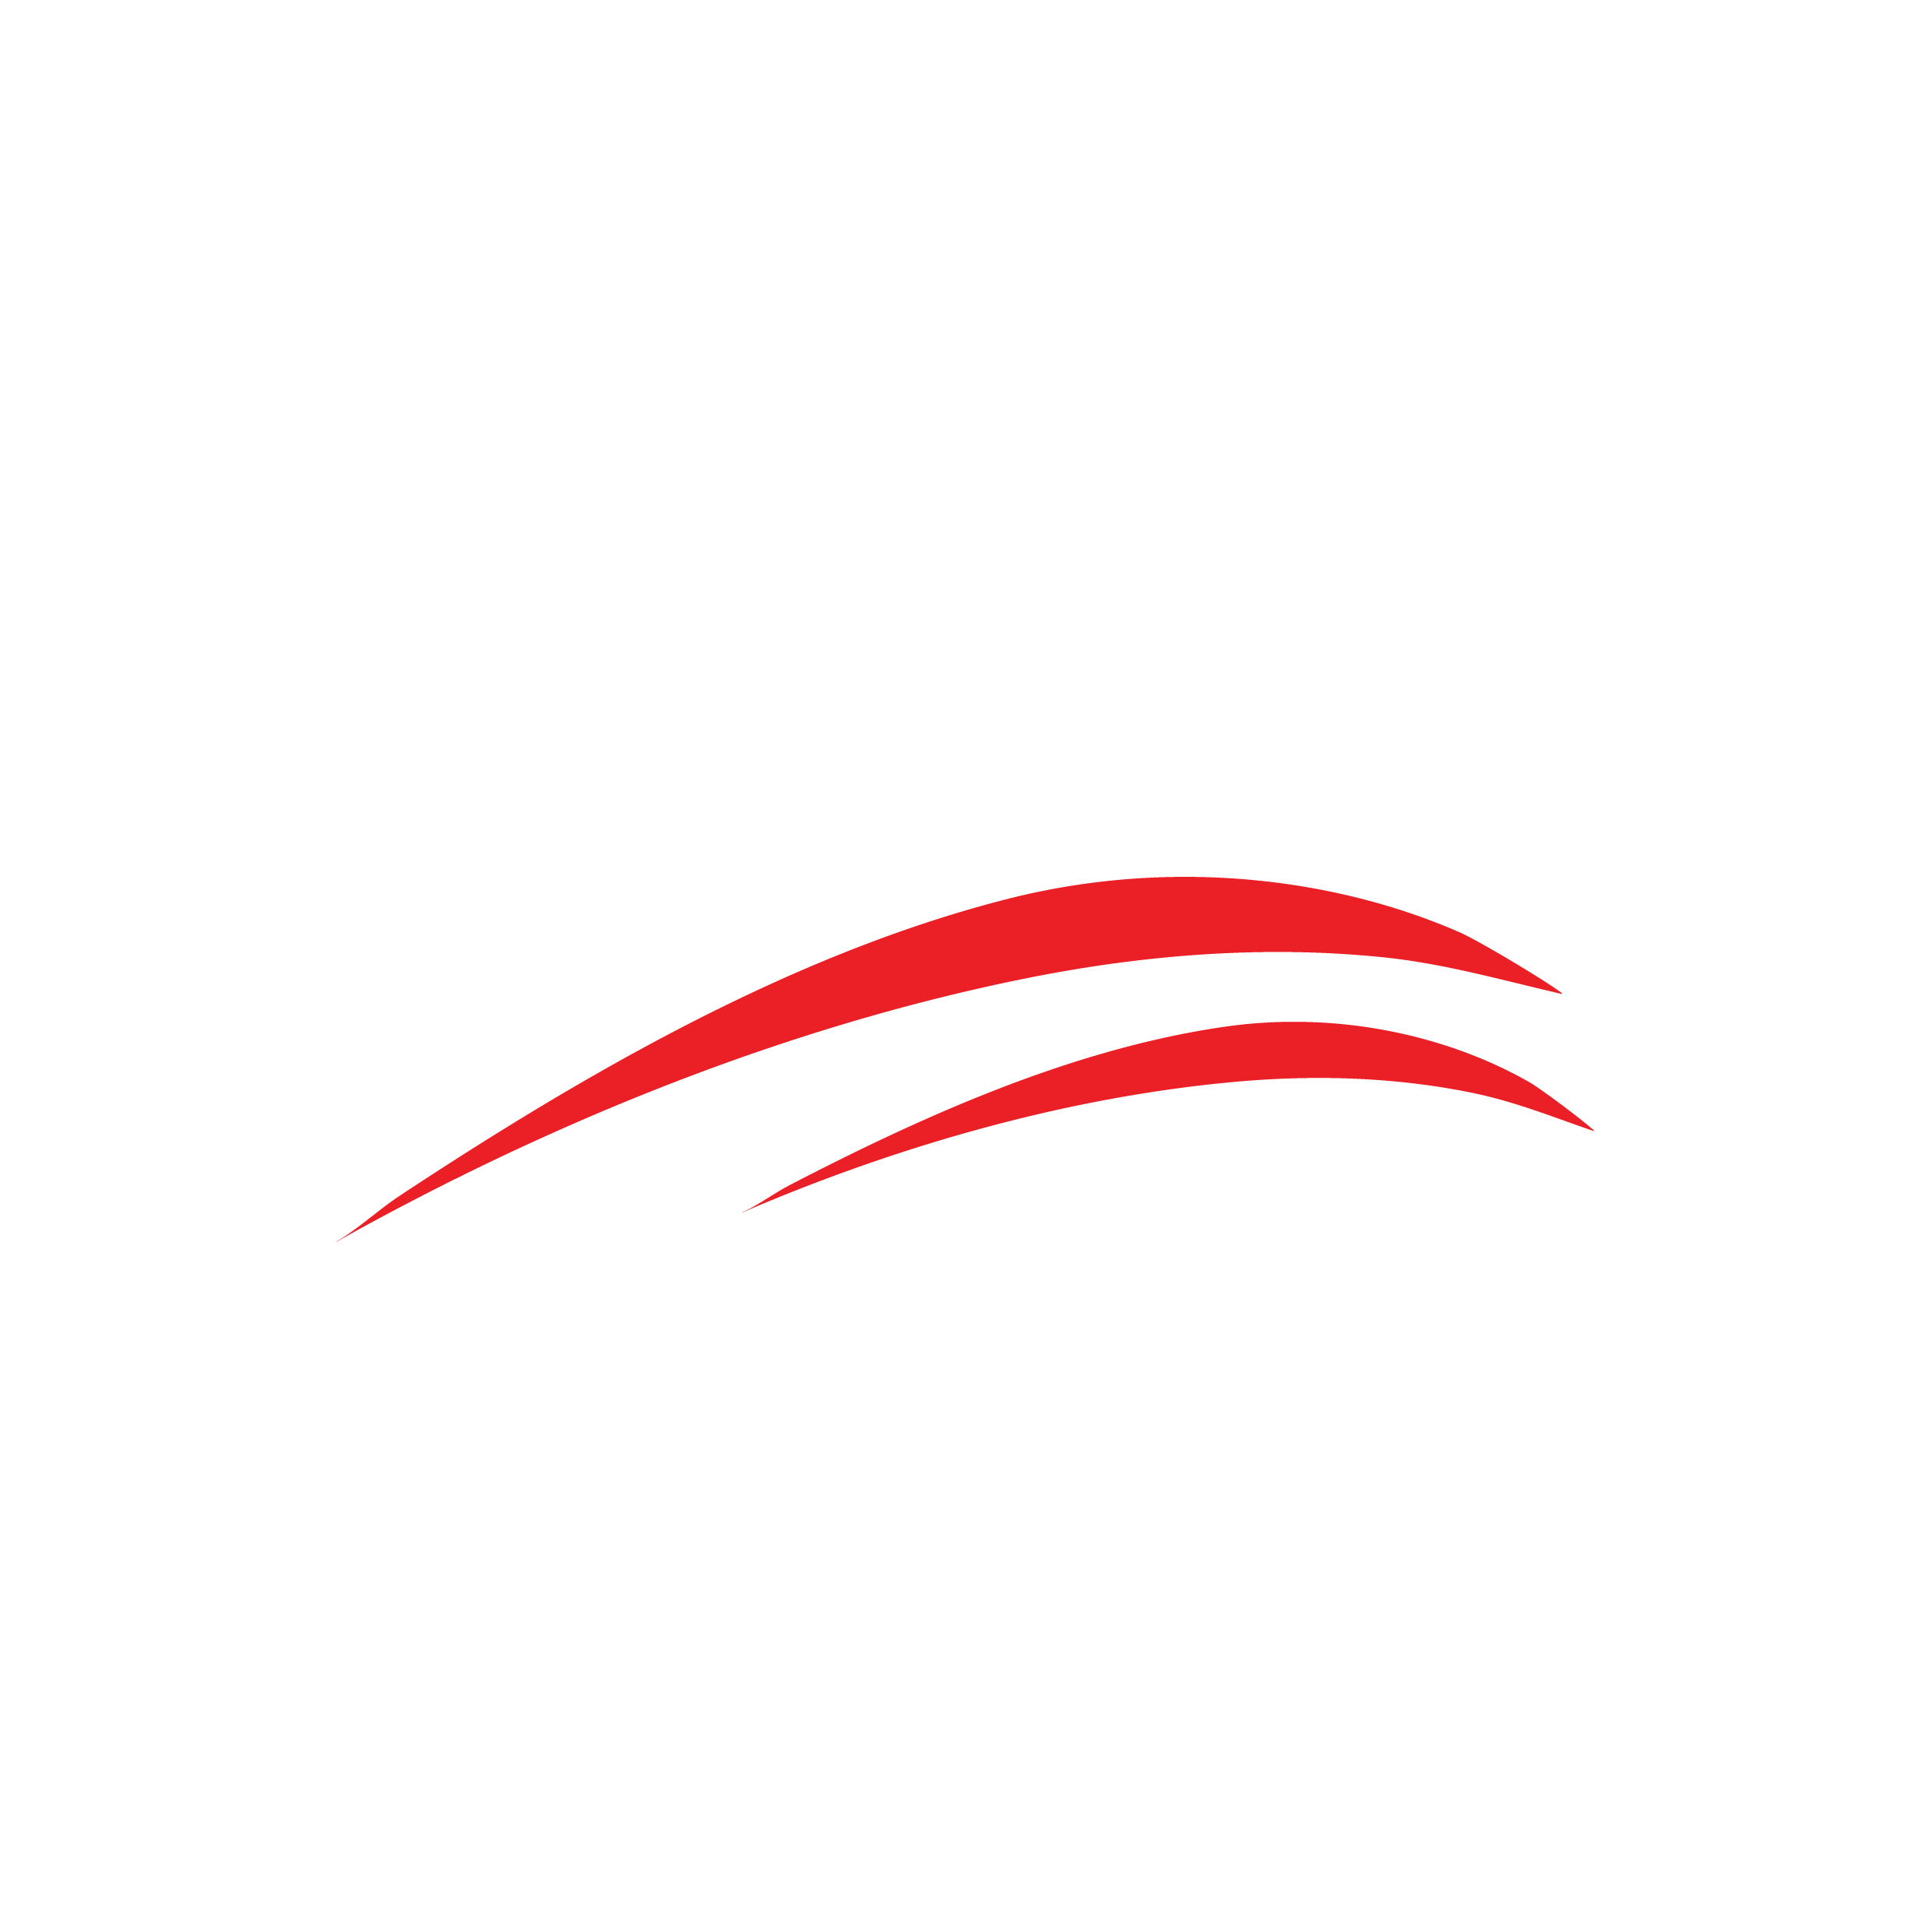 TOTAL CLADDING